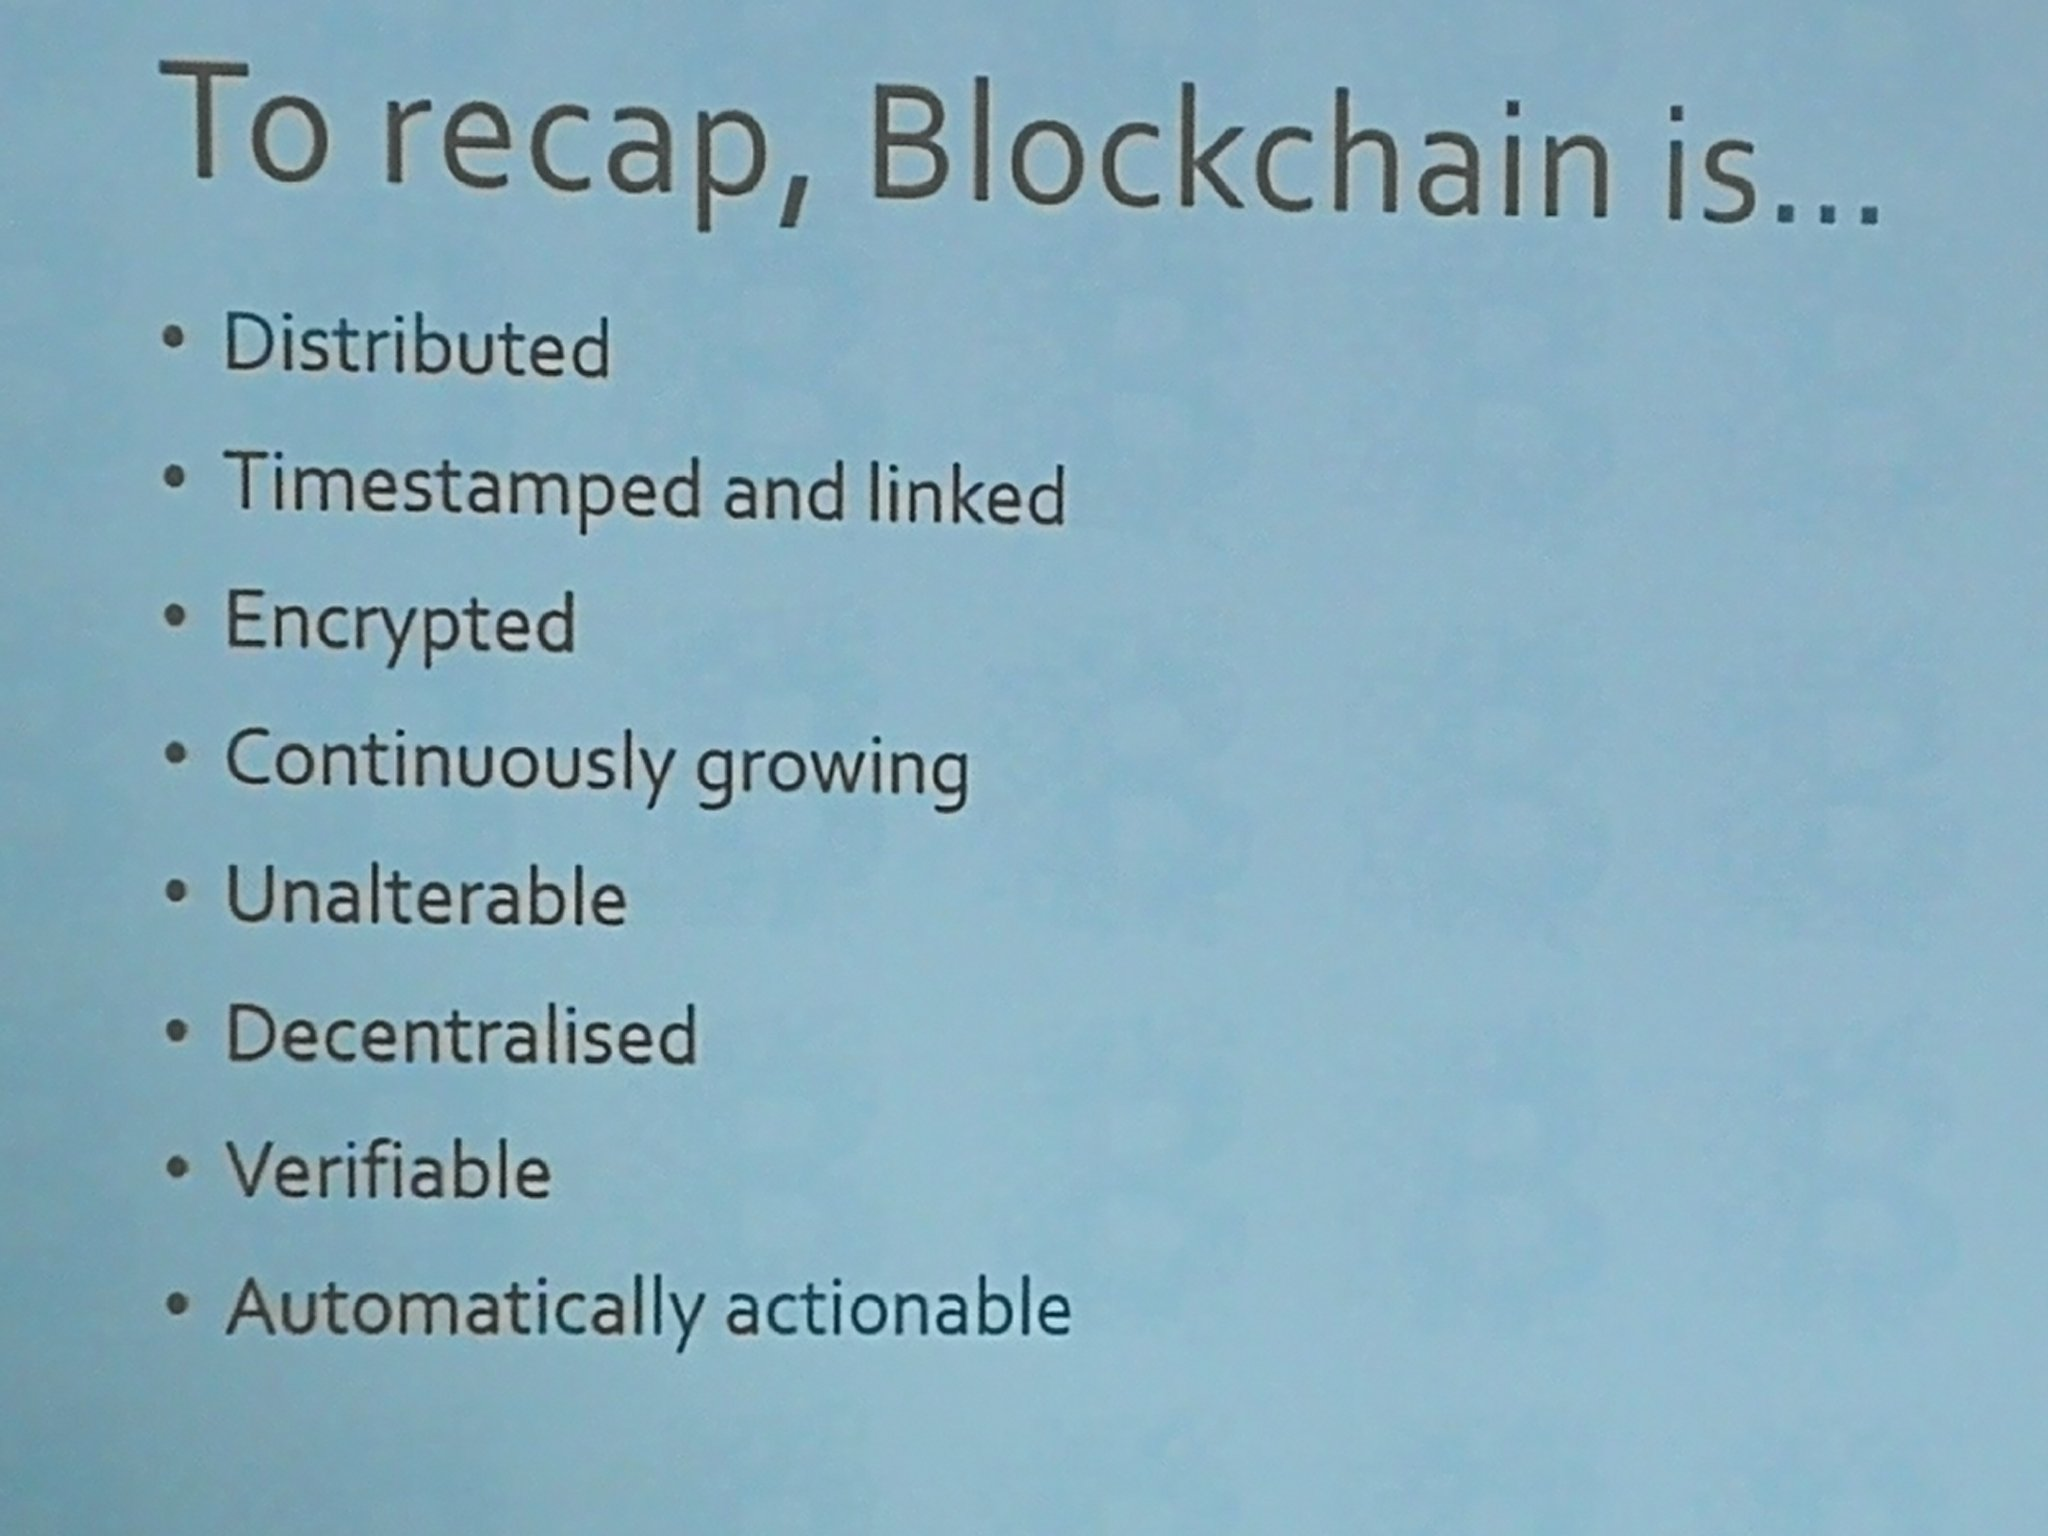 Whistle-stop tour of #blockchain concepts from @Metataxis #netikx86 https://t.co/IFUk6VNkLA